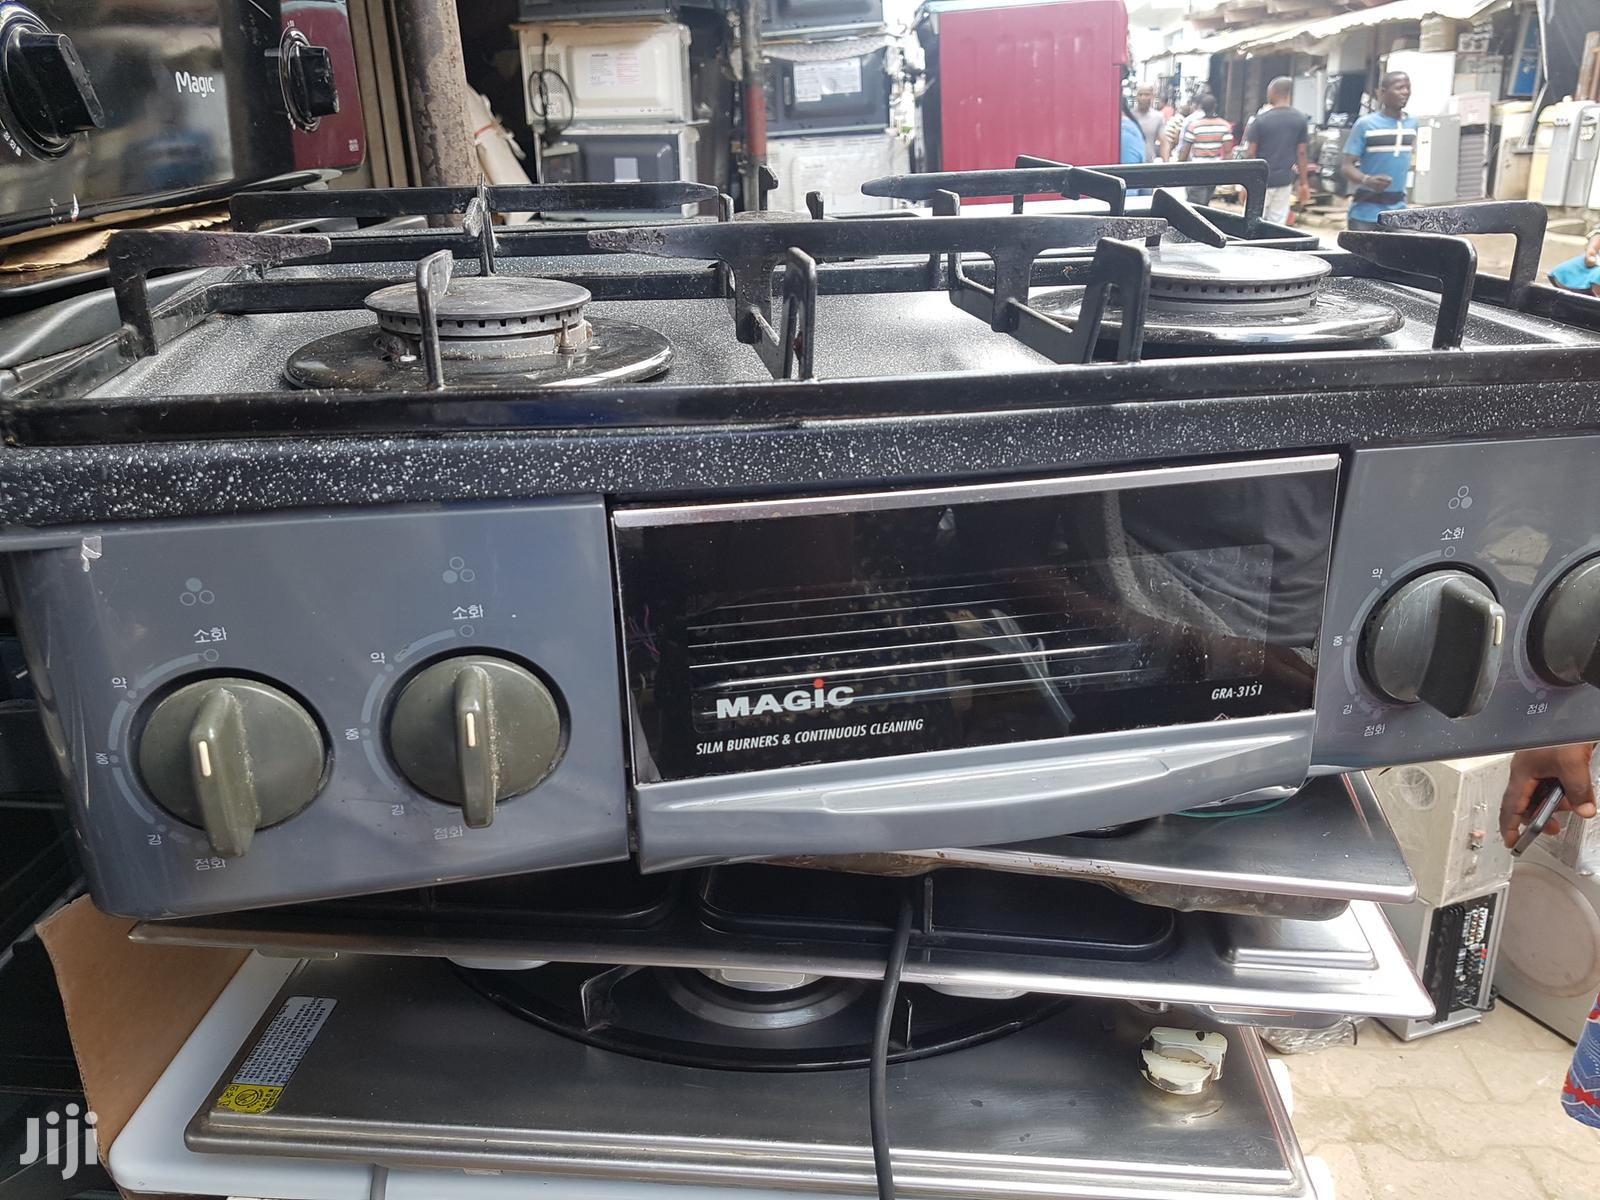 UK Used Table Top Gas Cooker | Restaurant & Catering Equipment for sale in Lagos State, Nigeria